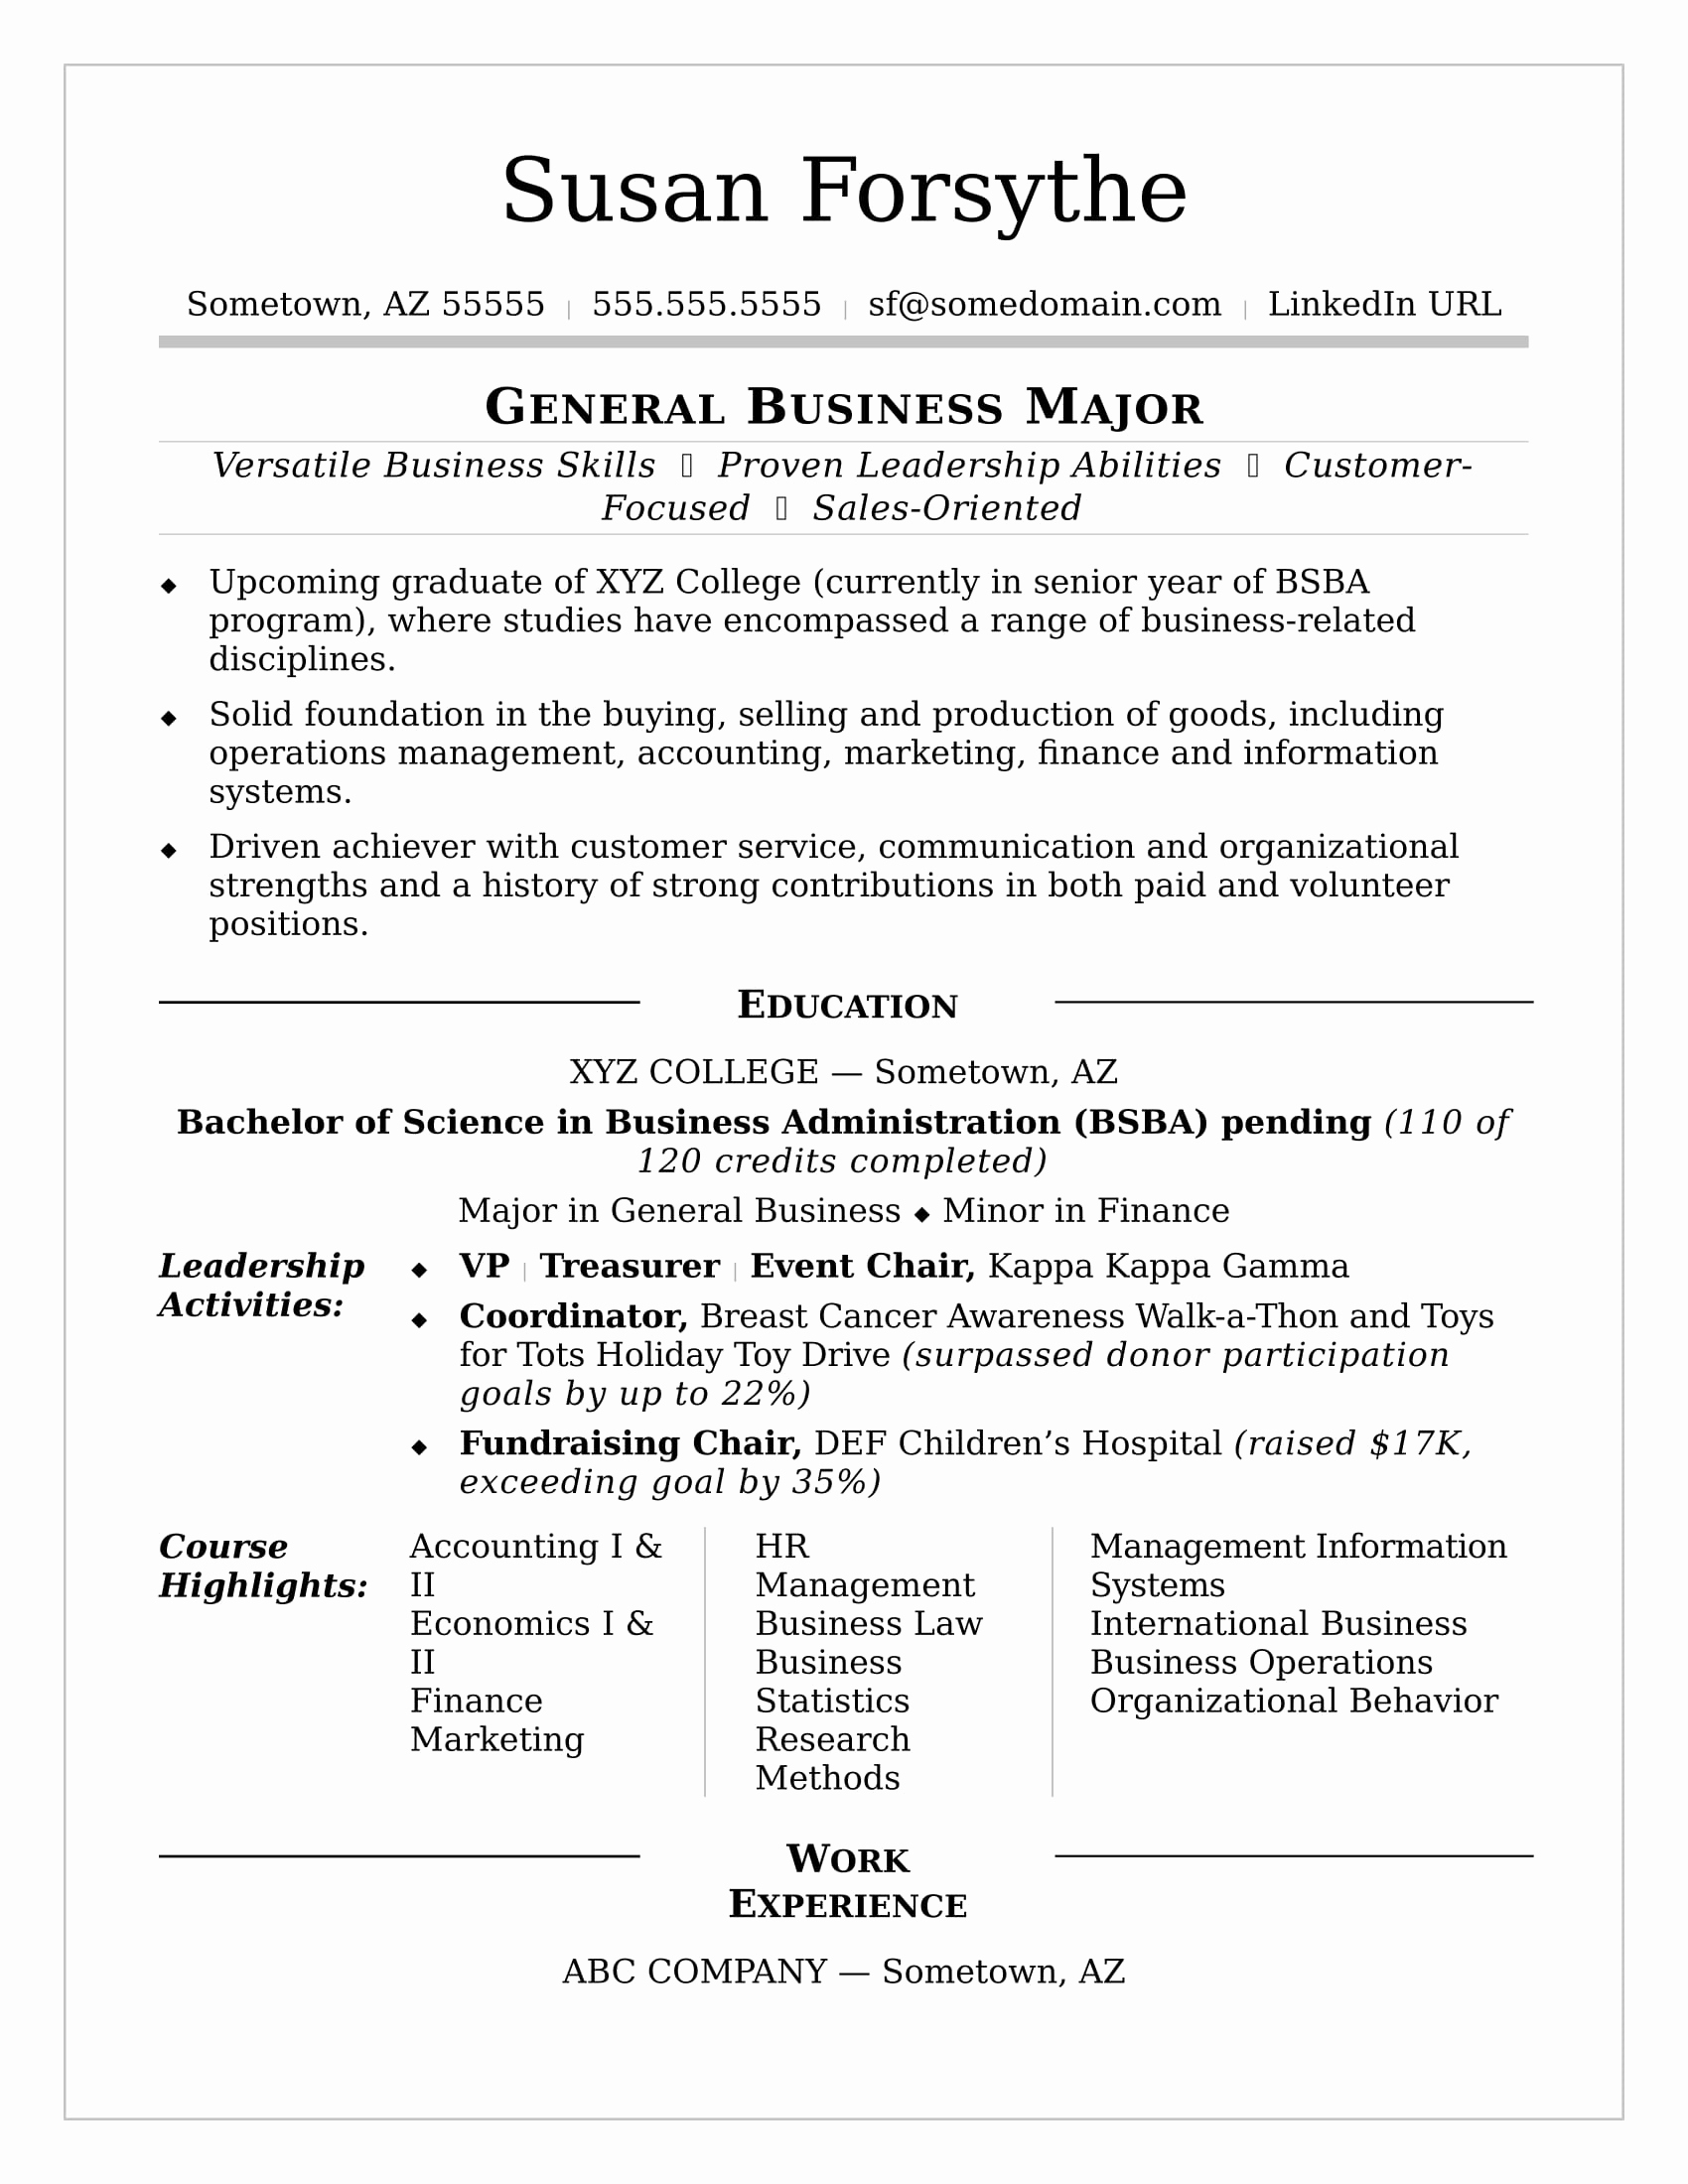 Resume Samples for College Student New College Resume Sample